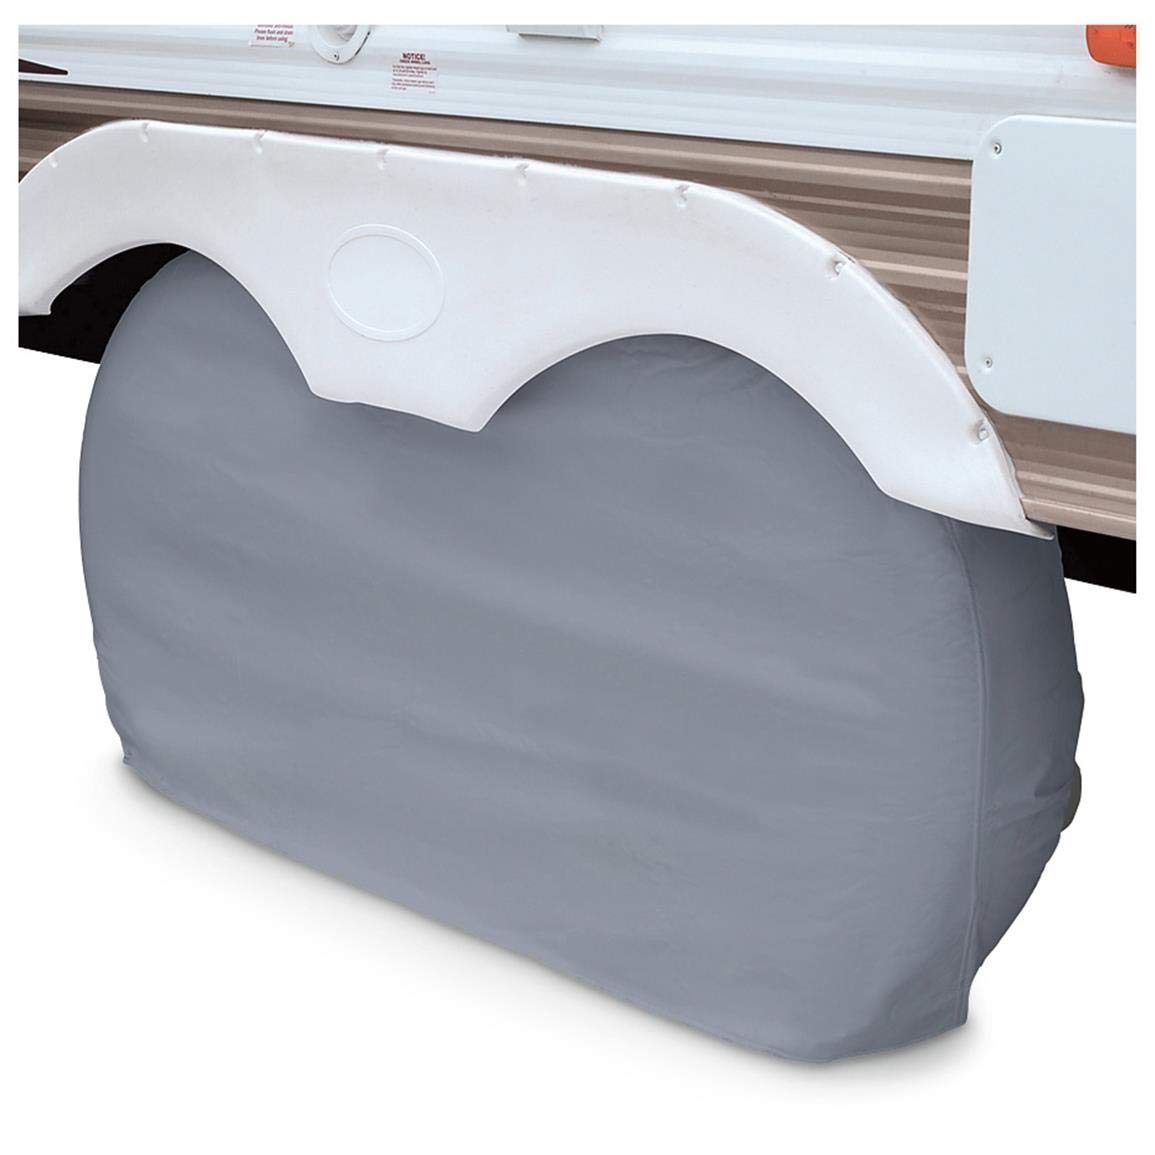 Grey Large Classic Accessories OverDrive RV Dual Axle Wheel Cover